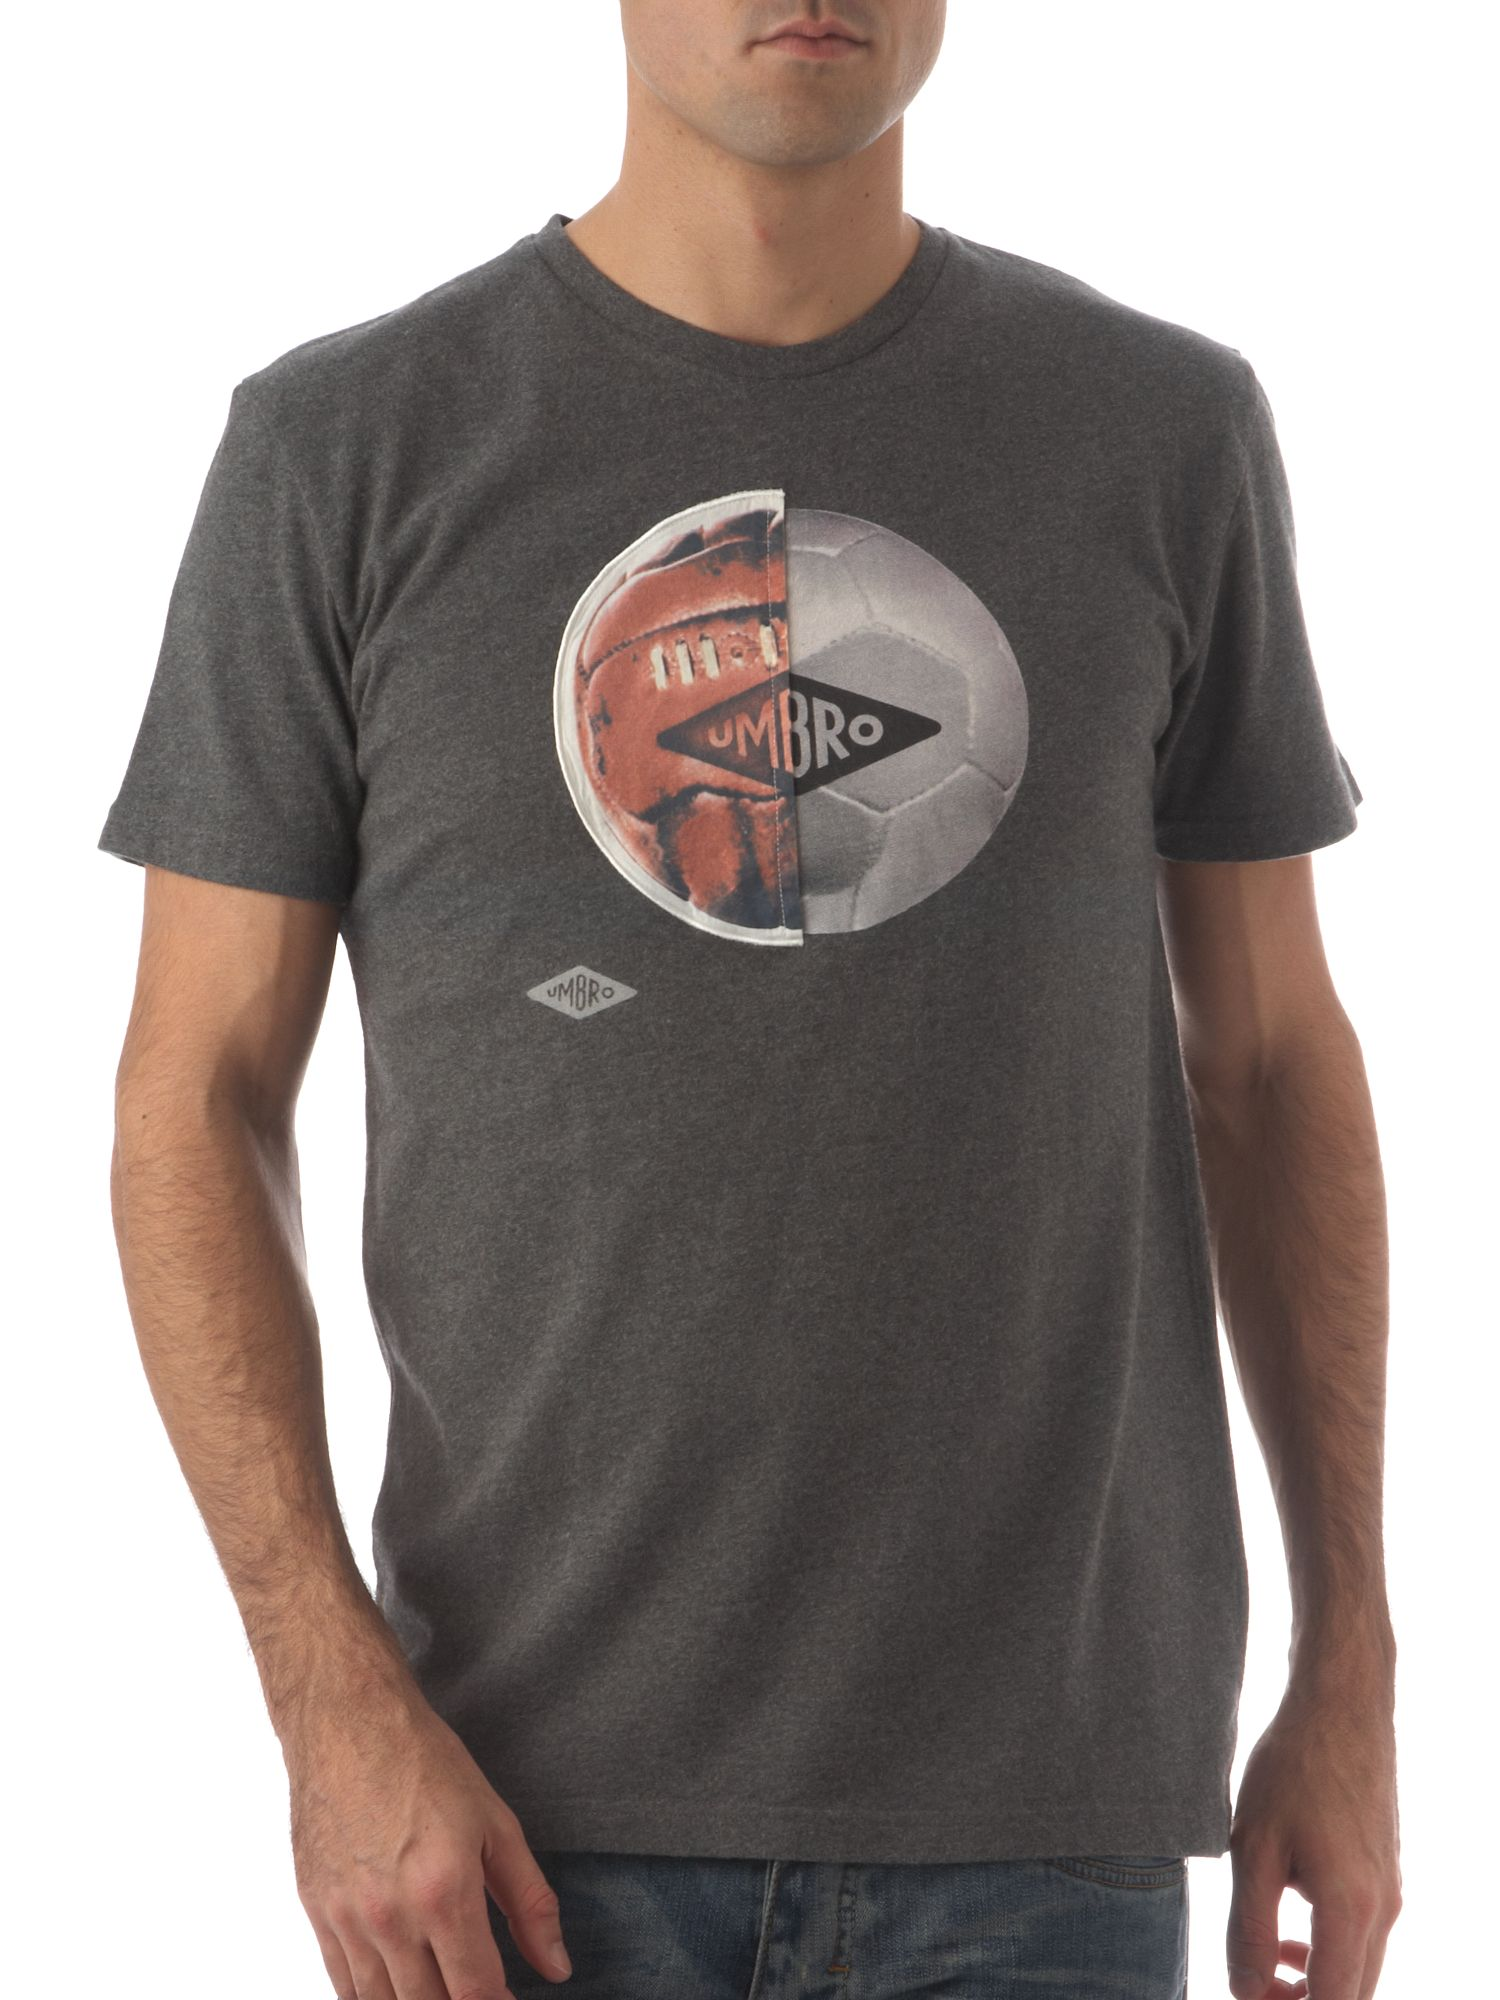 Umbro Football print tee product image